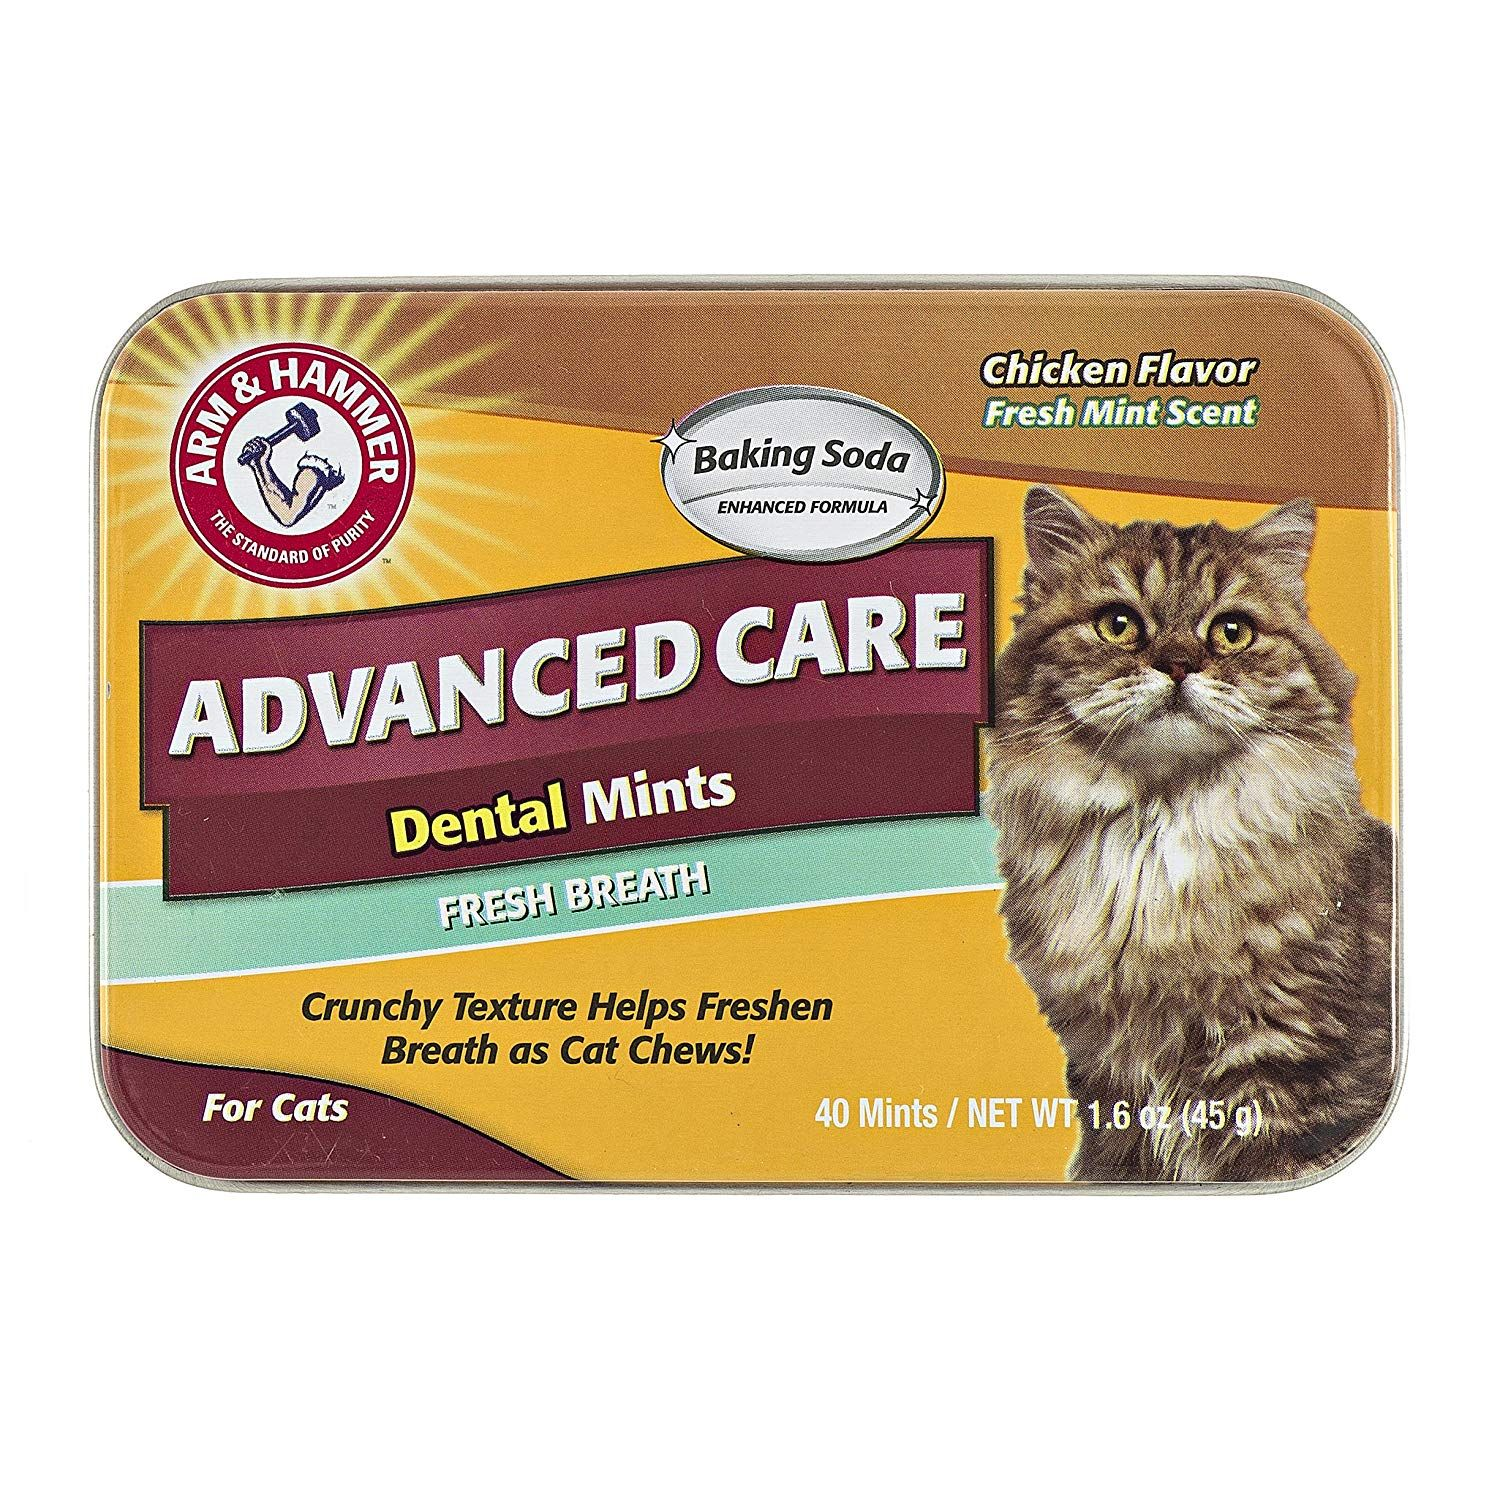 Arm And Hammer Advanced Care Dental Mints For Cats Chicken Flavor Be Sure To Check Out This Awesome Product Cat Breath Cat Dental Health Pet Dental Care